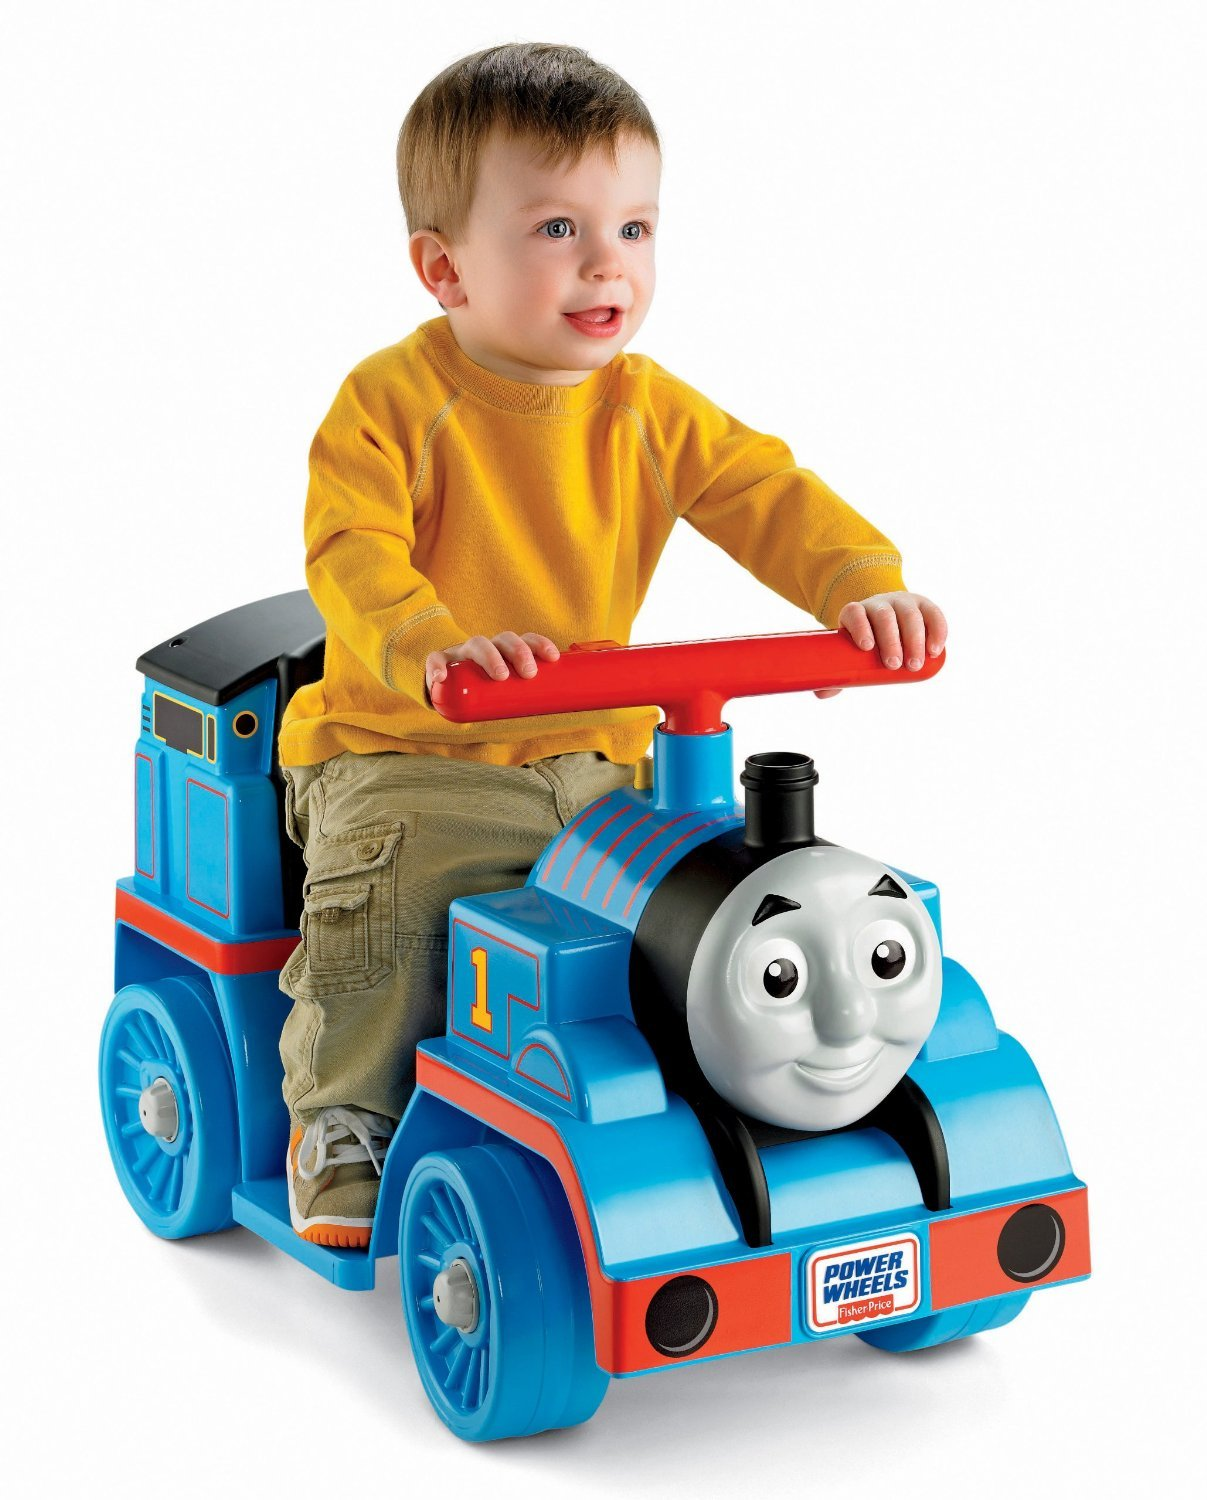 Fisher-Price Power Wheels Thomas The Tank Engine Vehicle